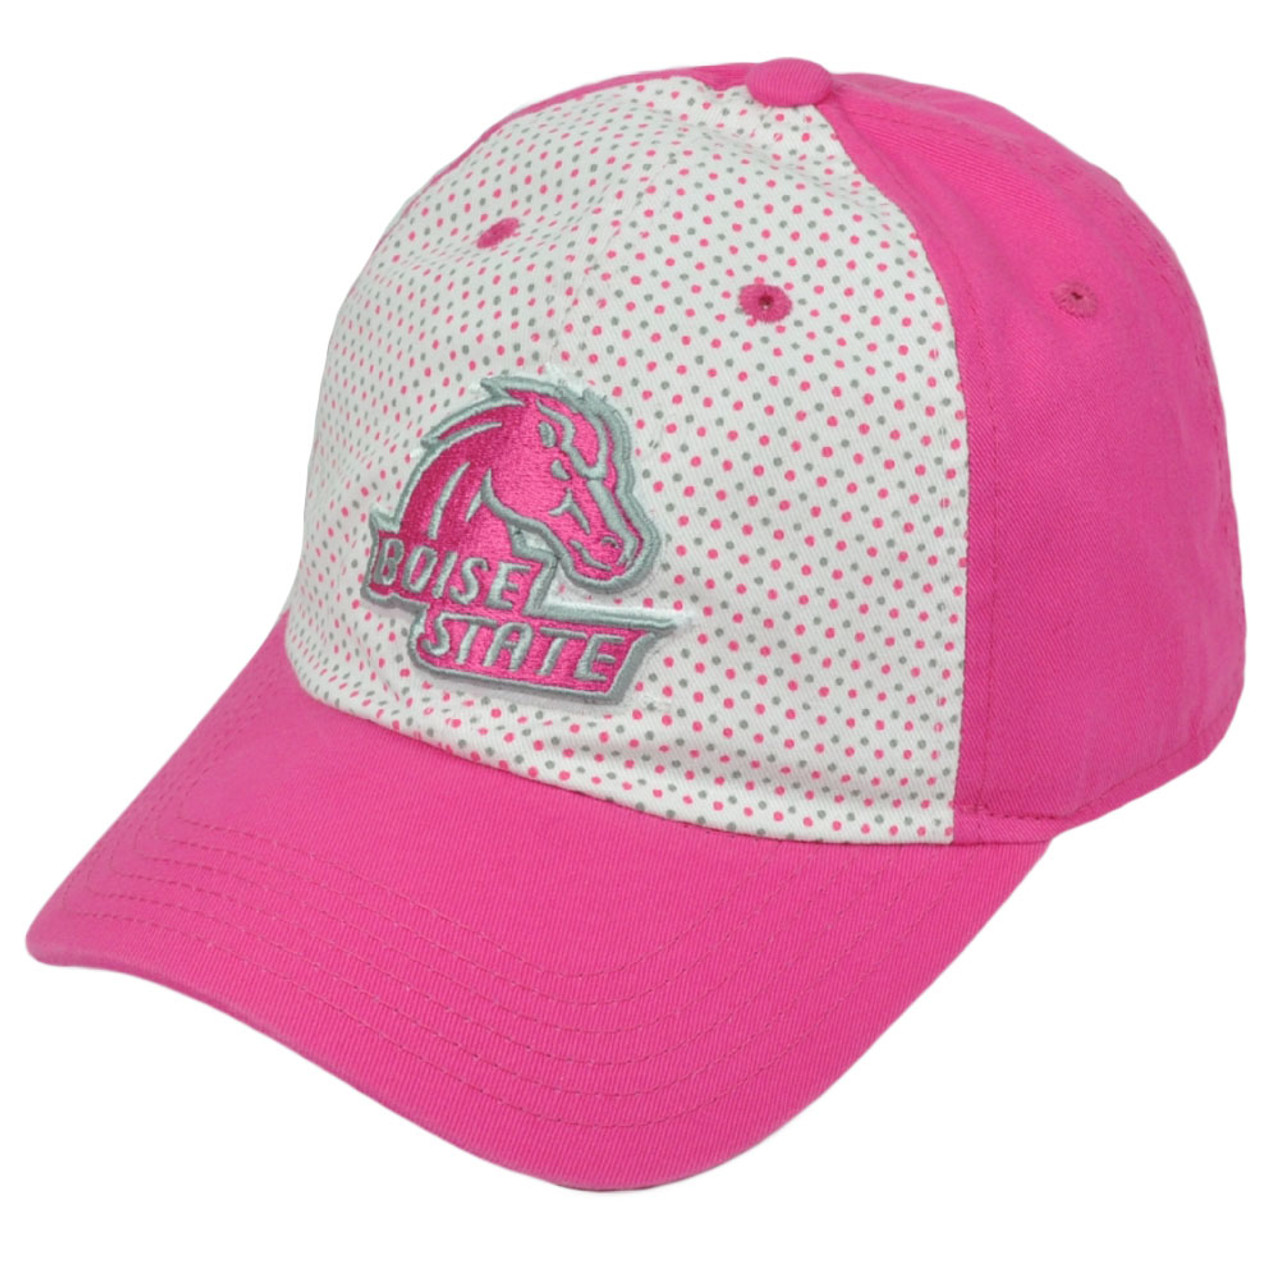 323a491cd NCAA Boise State Broncos Polka Dots Pink White Relaxed Hat Cap Sun Buckle  Ladies